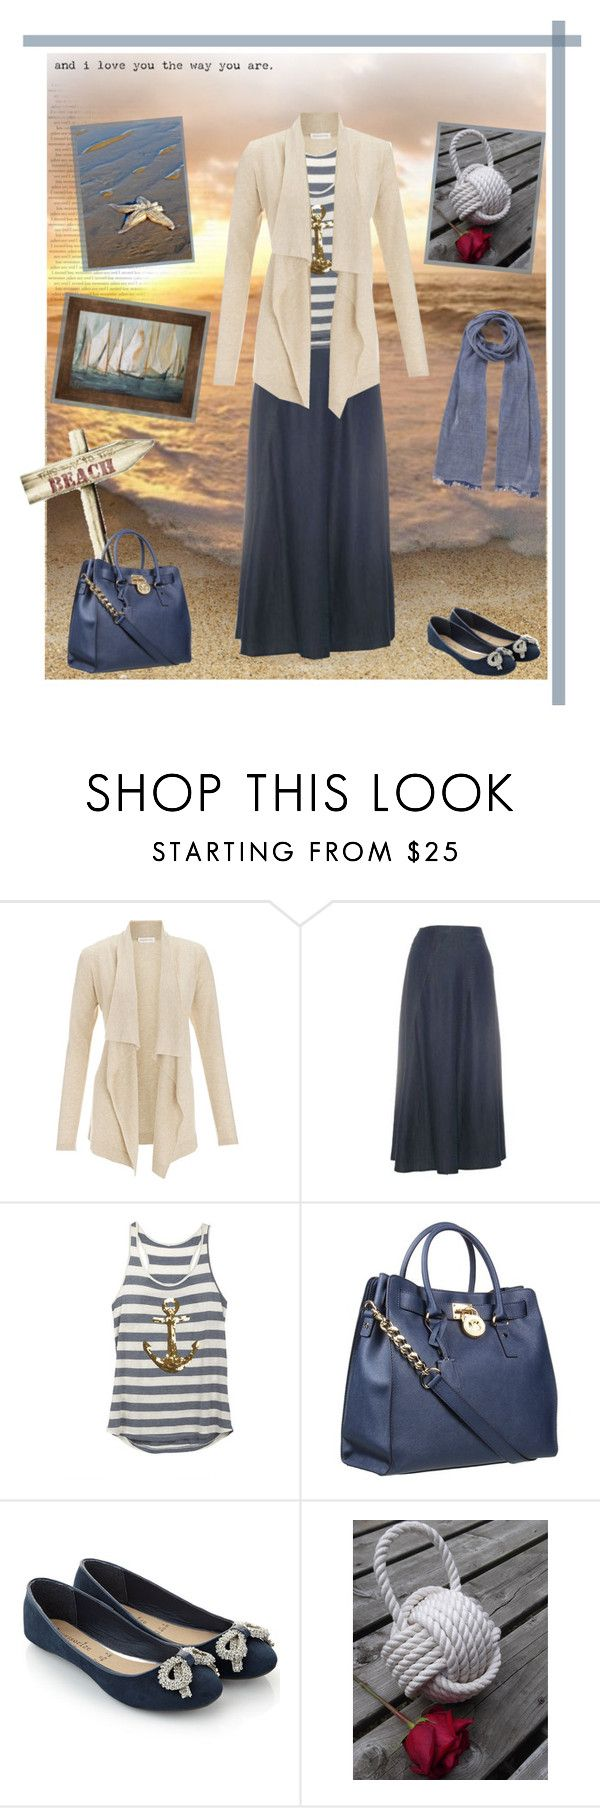 """""""This Way to the Beach"""" by julailala ❤ liked on Polyvore featuring Monsoon, Kaliko, MICHAEL Michael Kors, Accessorize, John Lewis, nautical, stripes, maxi skirts, cardigans and ocean"""